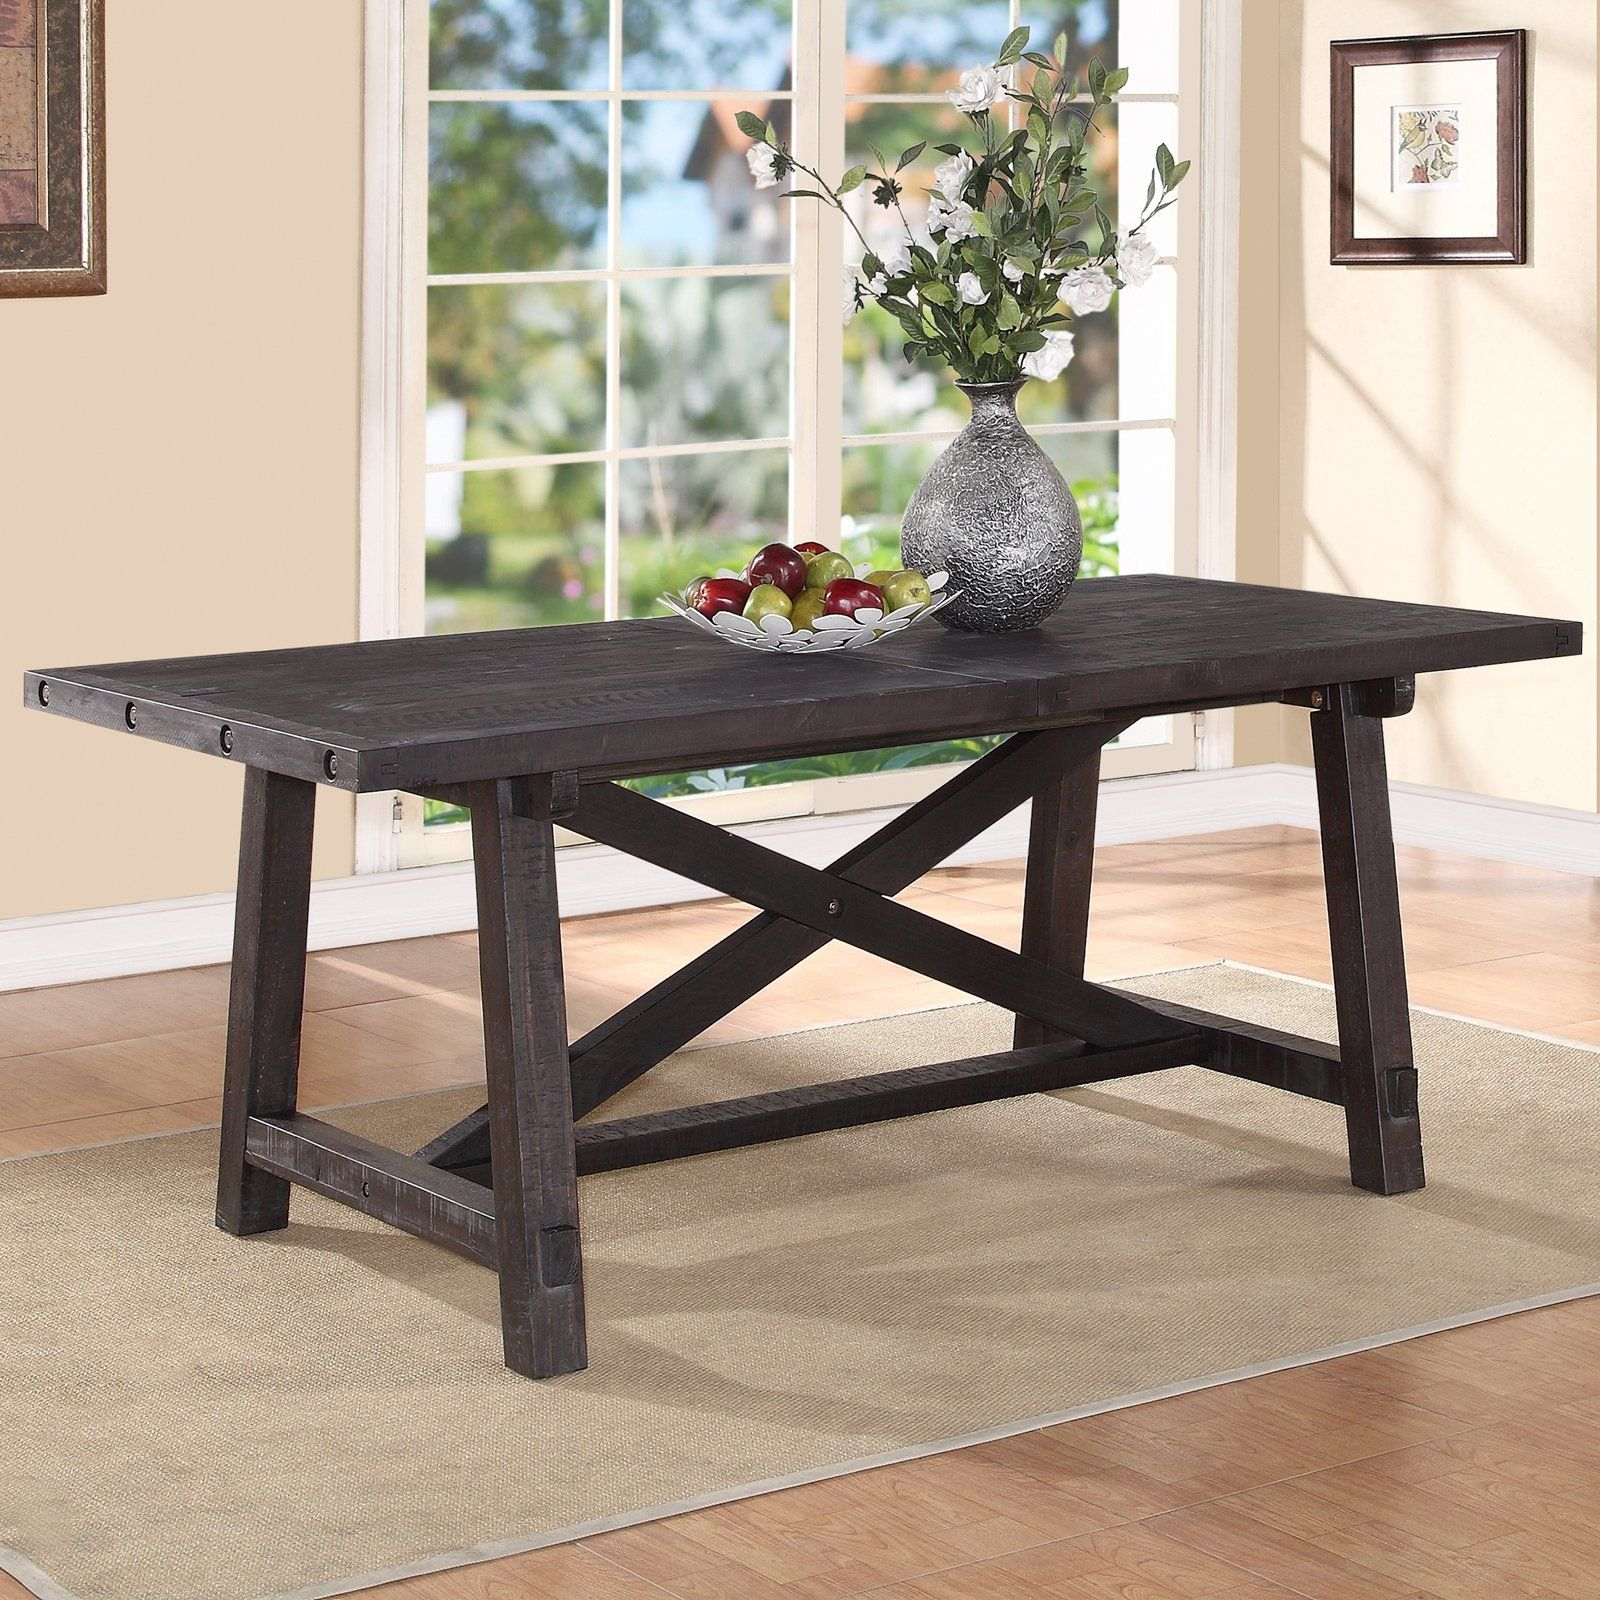 Charmant Modus Yosemite Solid Wood Rectangular Extension Table   Cafe   Kitchen U0026 Dining  Room Tables At Hayneedle